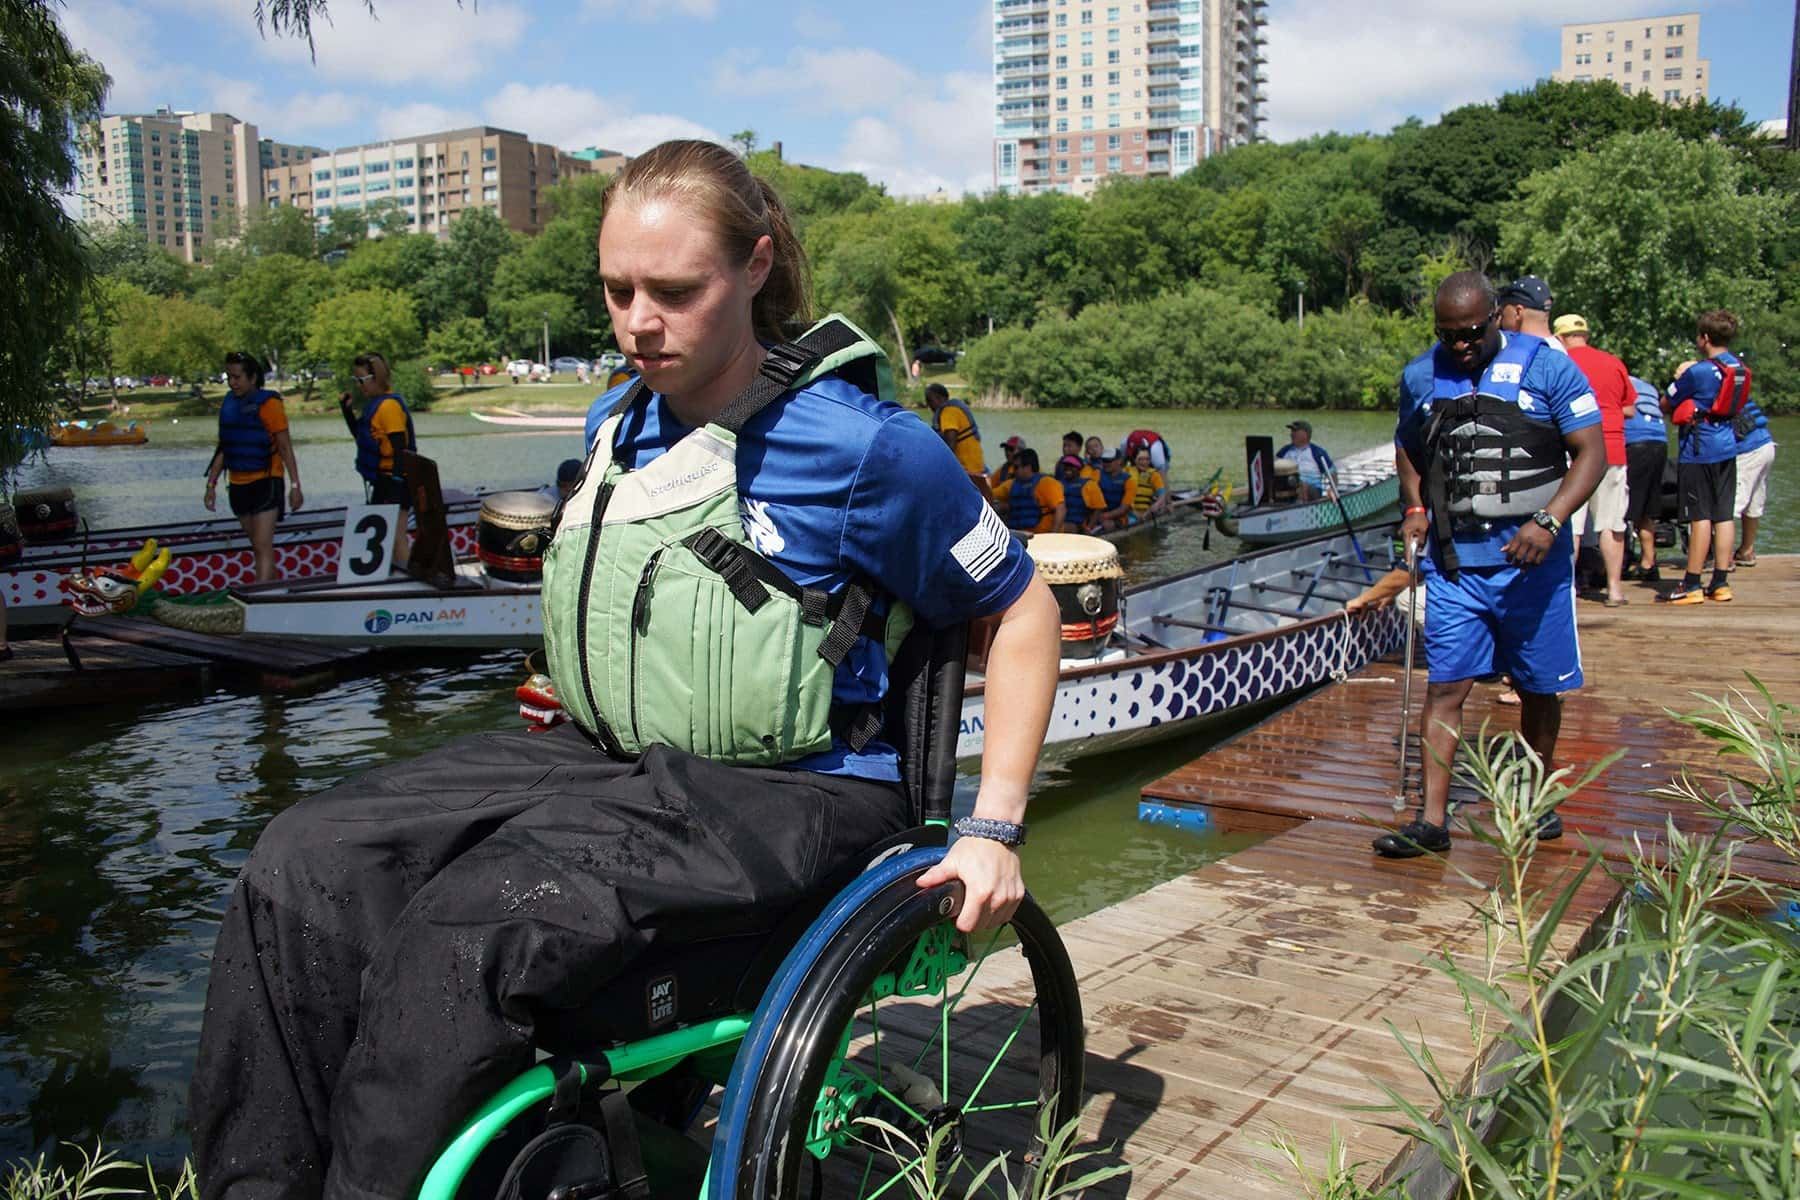 080116_dragonboat_album_01_09